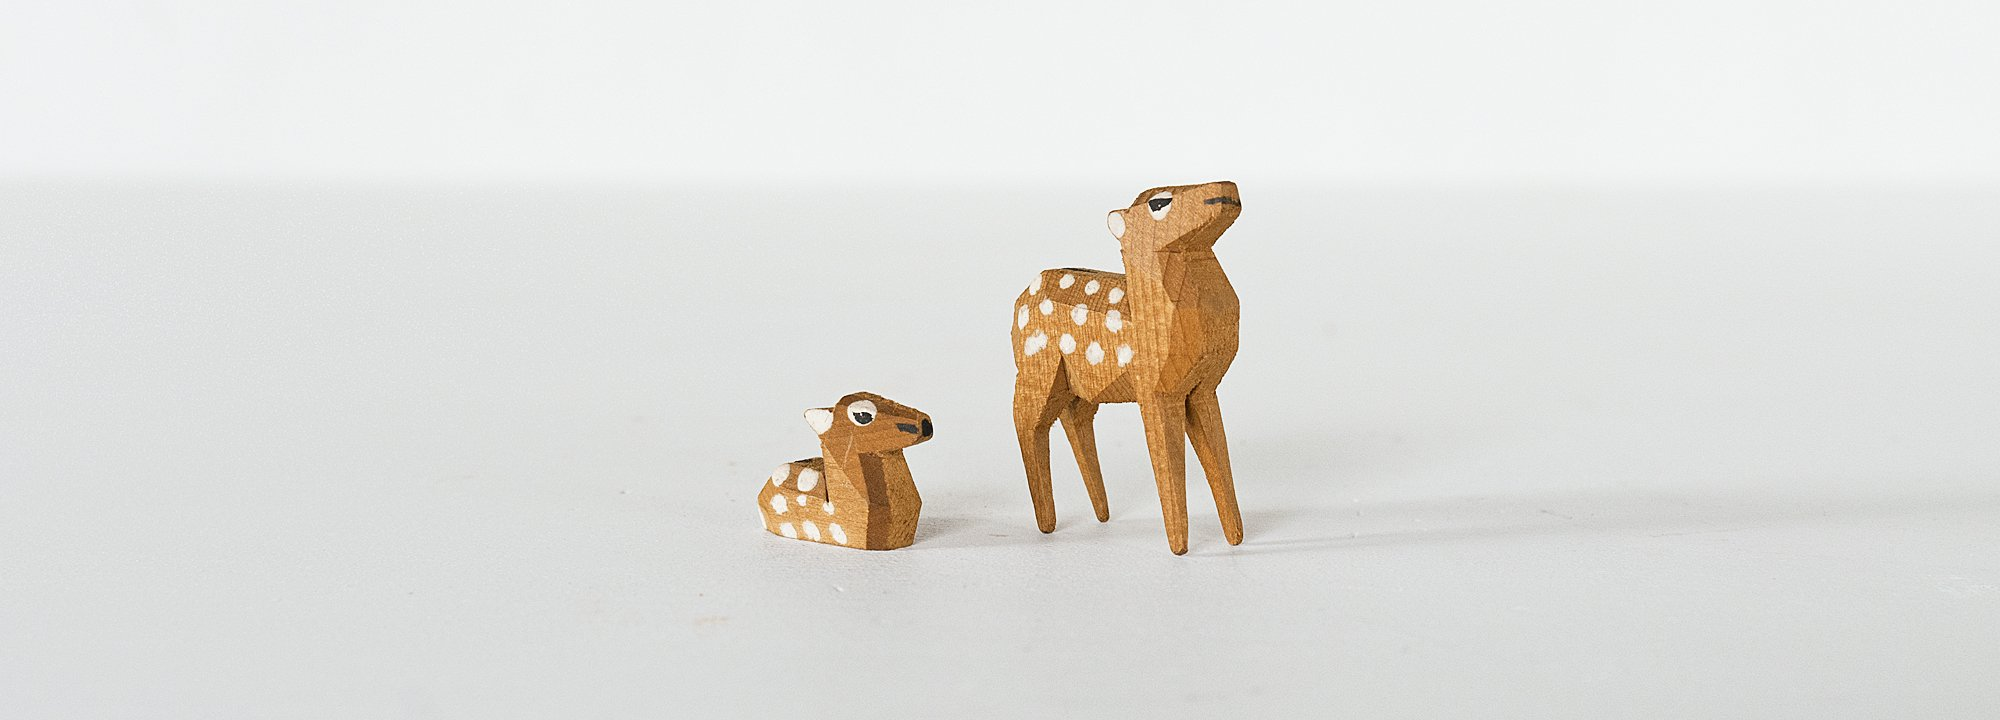 Vintage Object : Wooden Deer